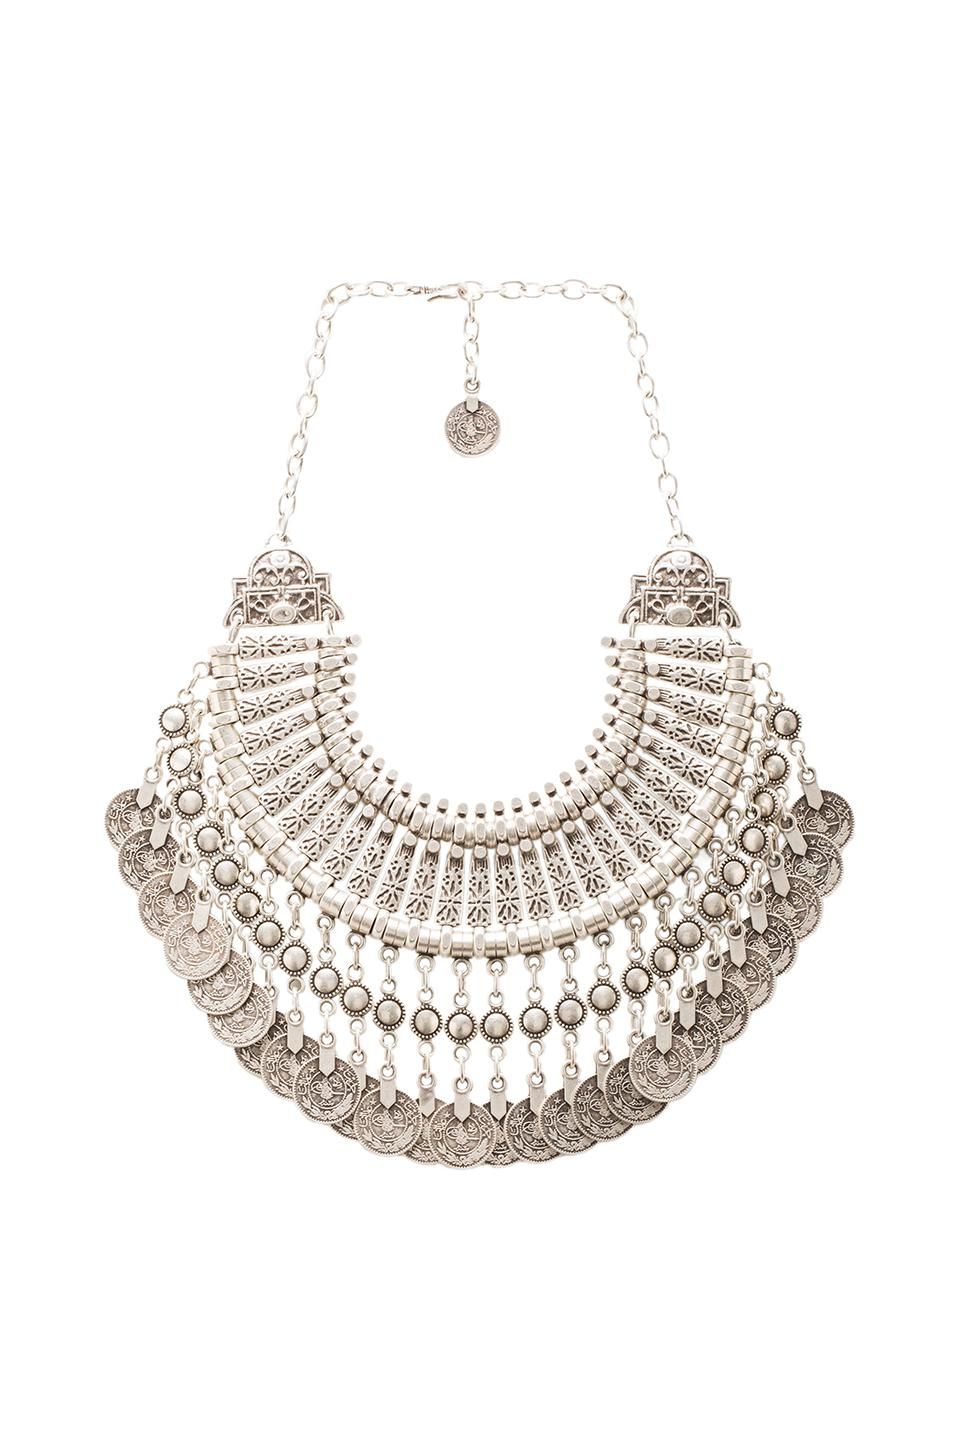 Natalie B Jewelry Natalie B Fit for a Queen Necklace in Silver | REVOLVE